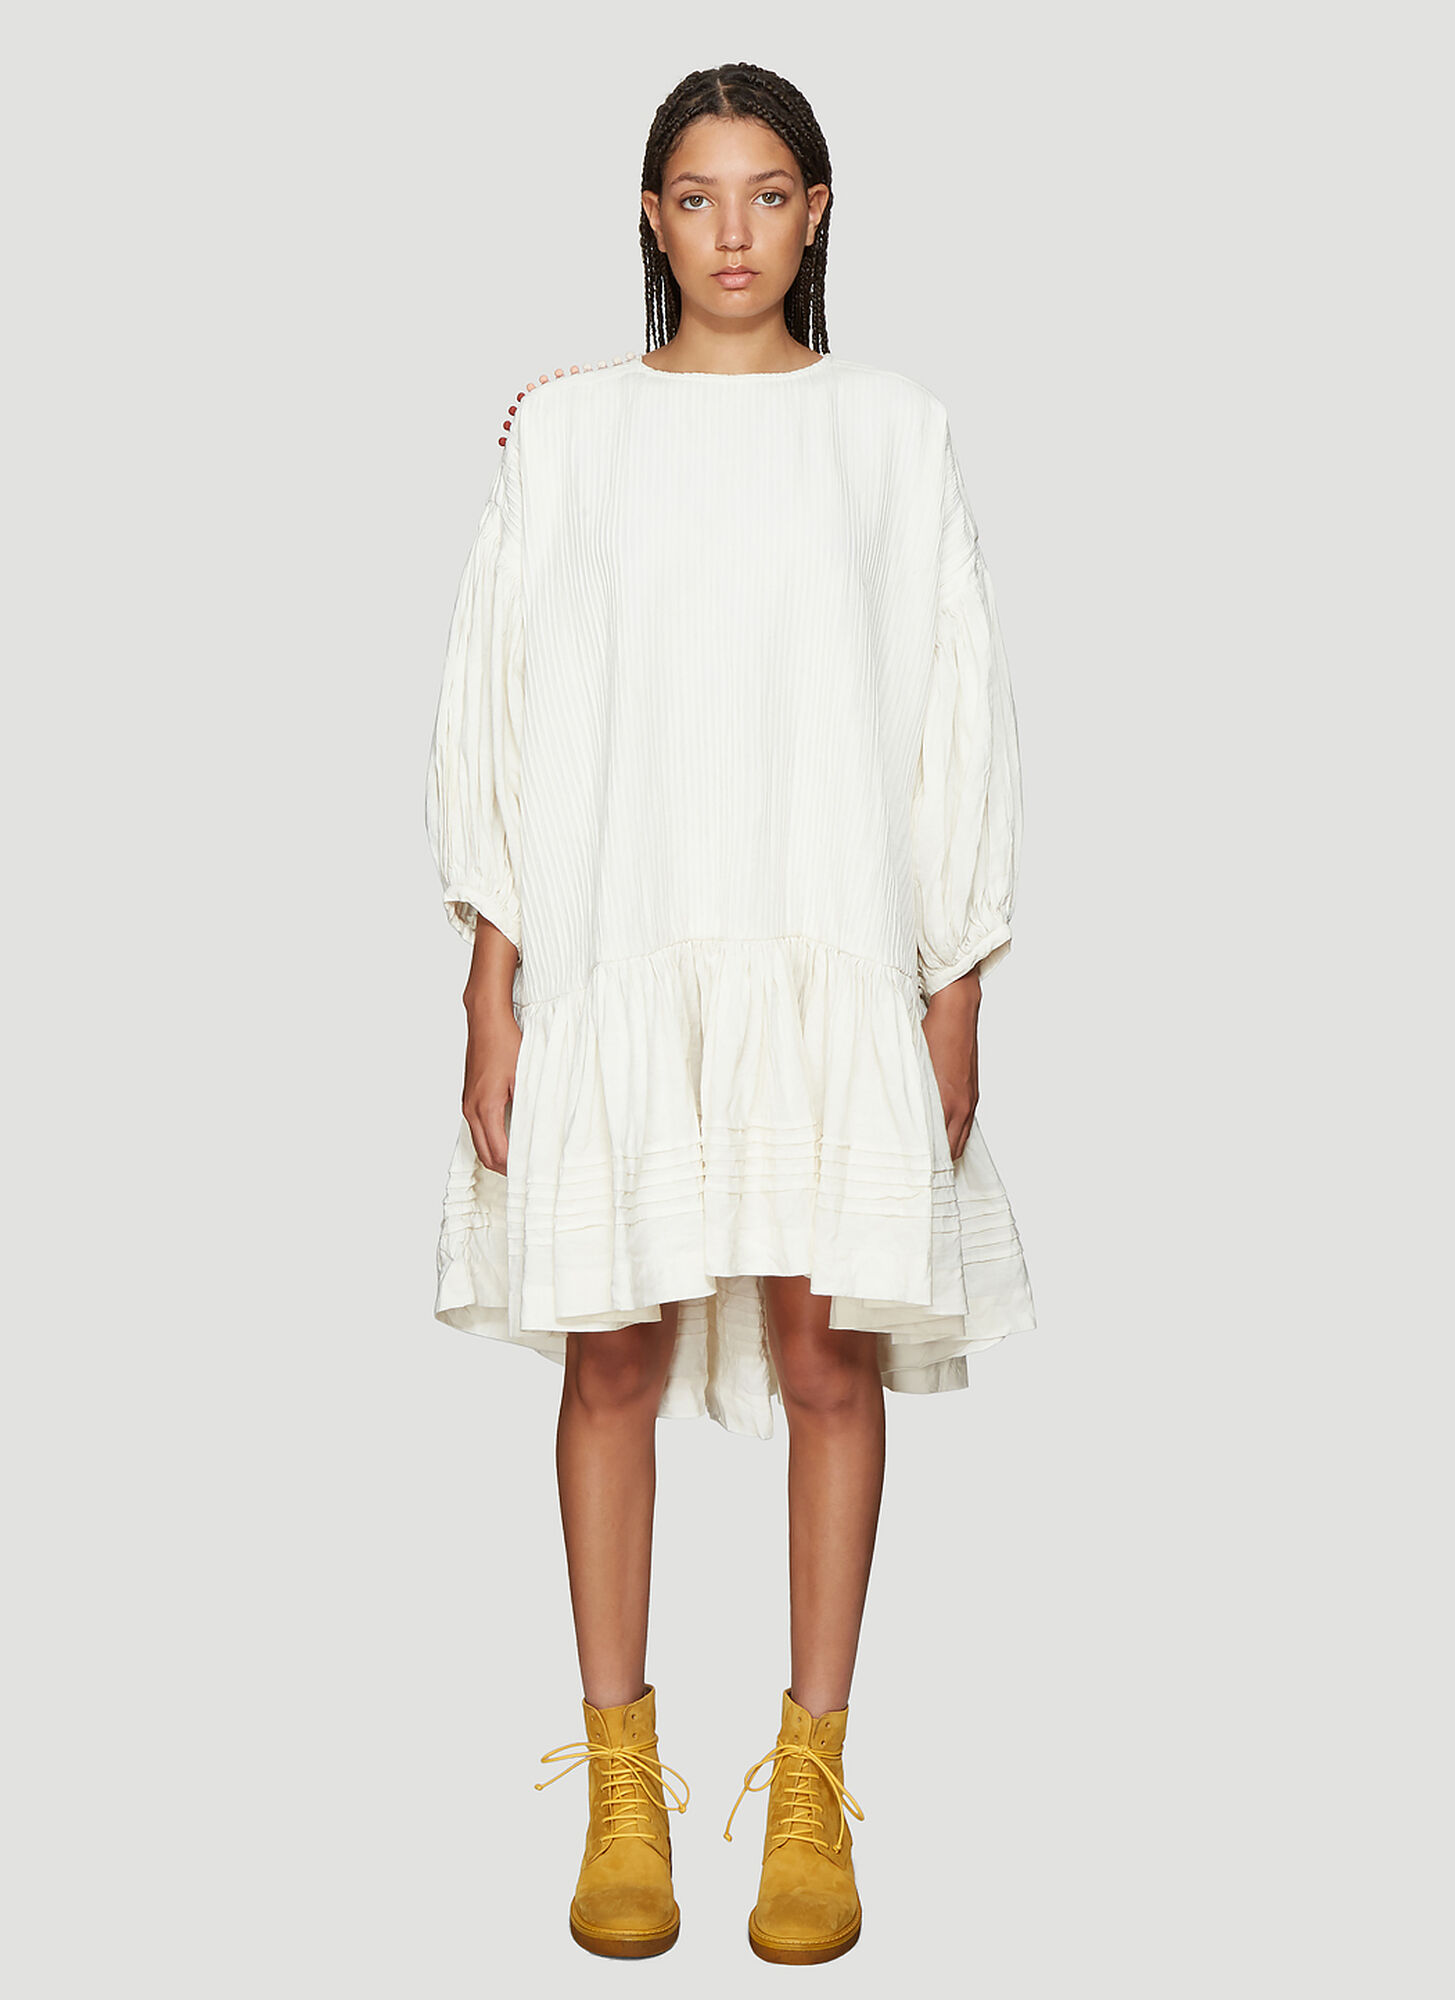 STORY mfg. Verity Dress in White